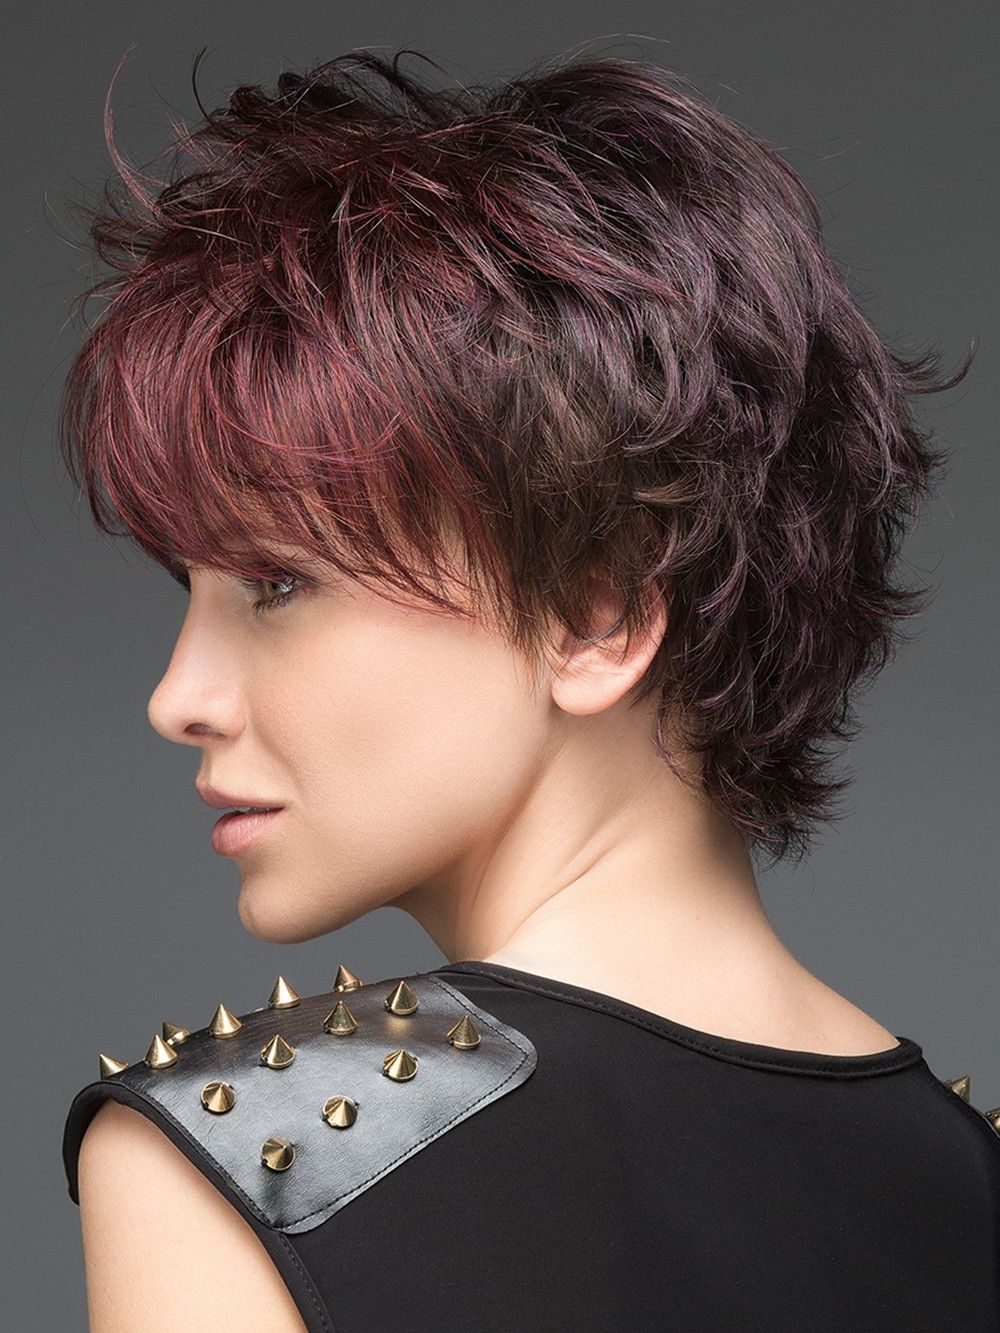 Most Current Short Shaggy Hairstyles For Curly Hair Intended For Hot Aubergine Mix (View 7 of 15)